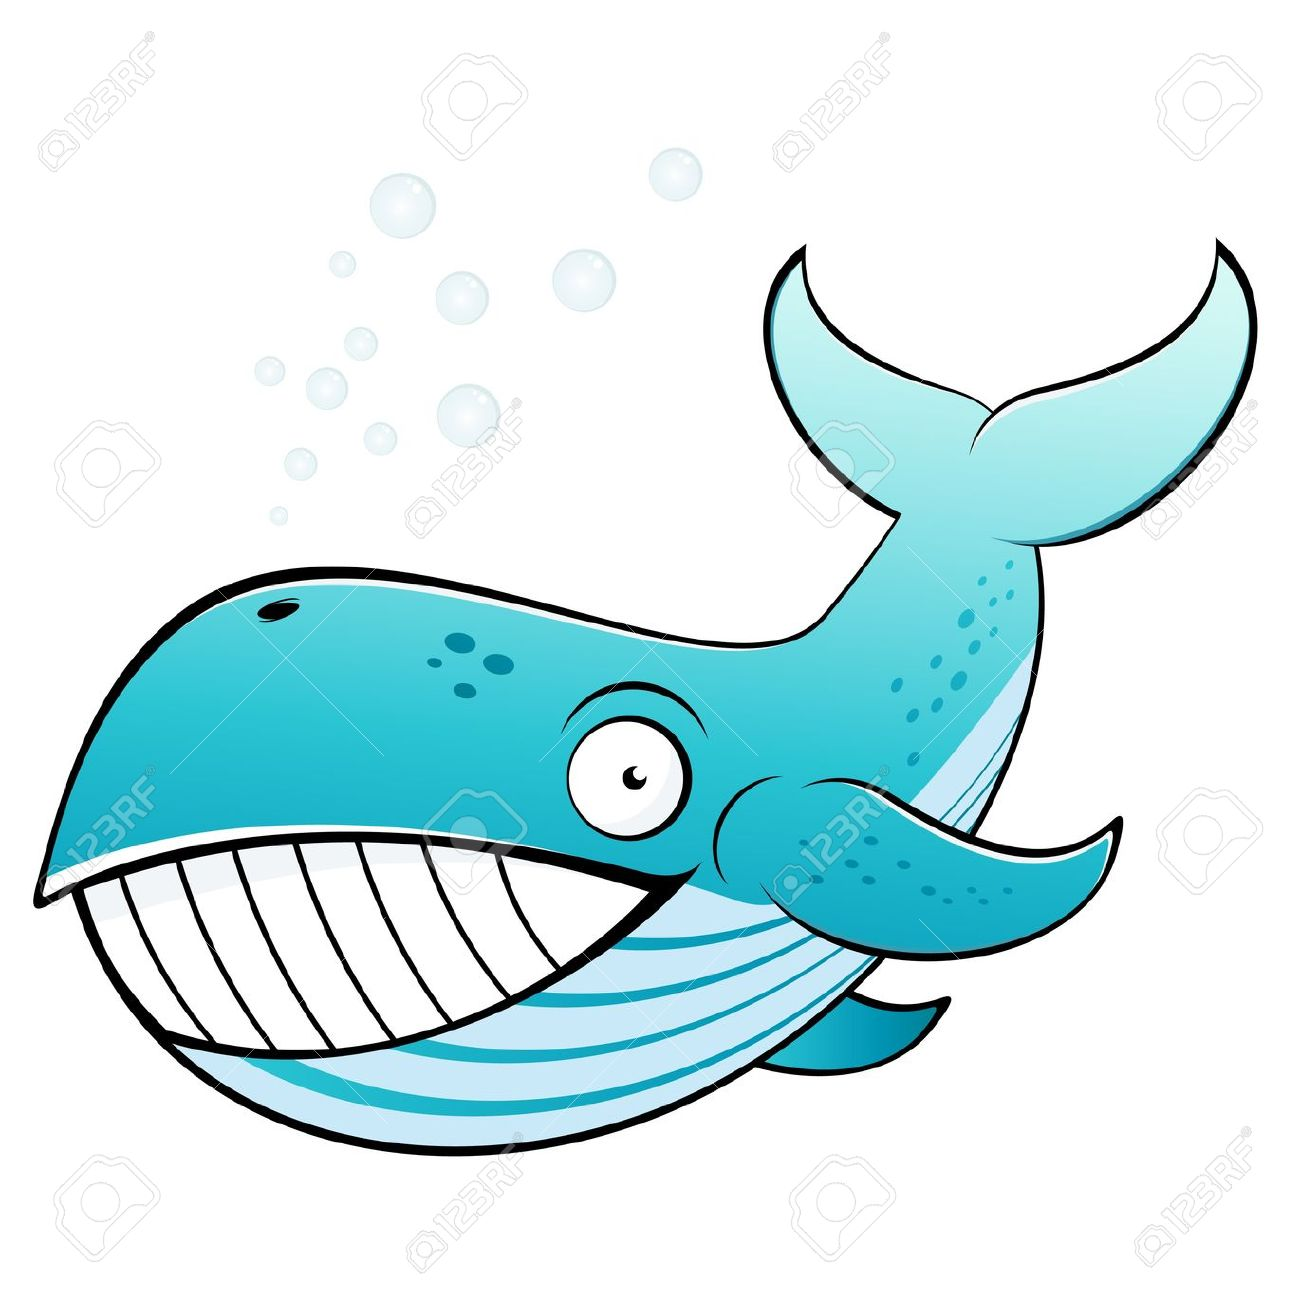 Baleine clipart #7, Download drawings